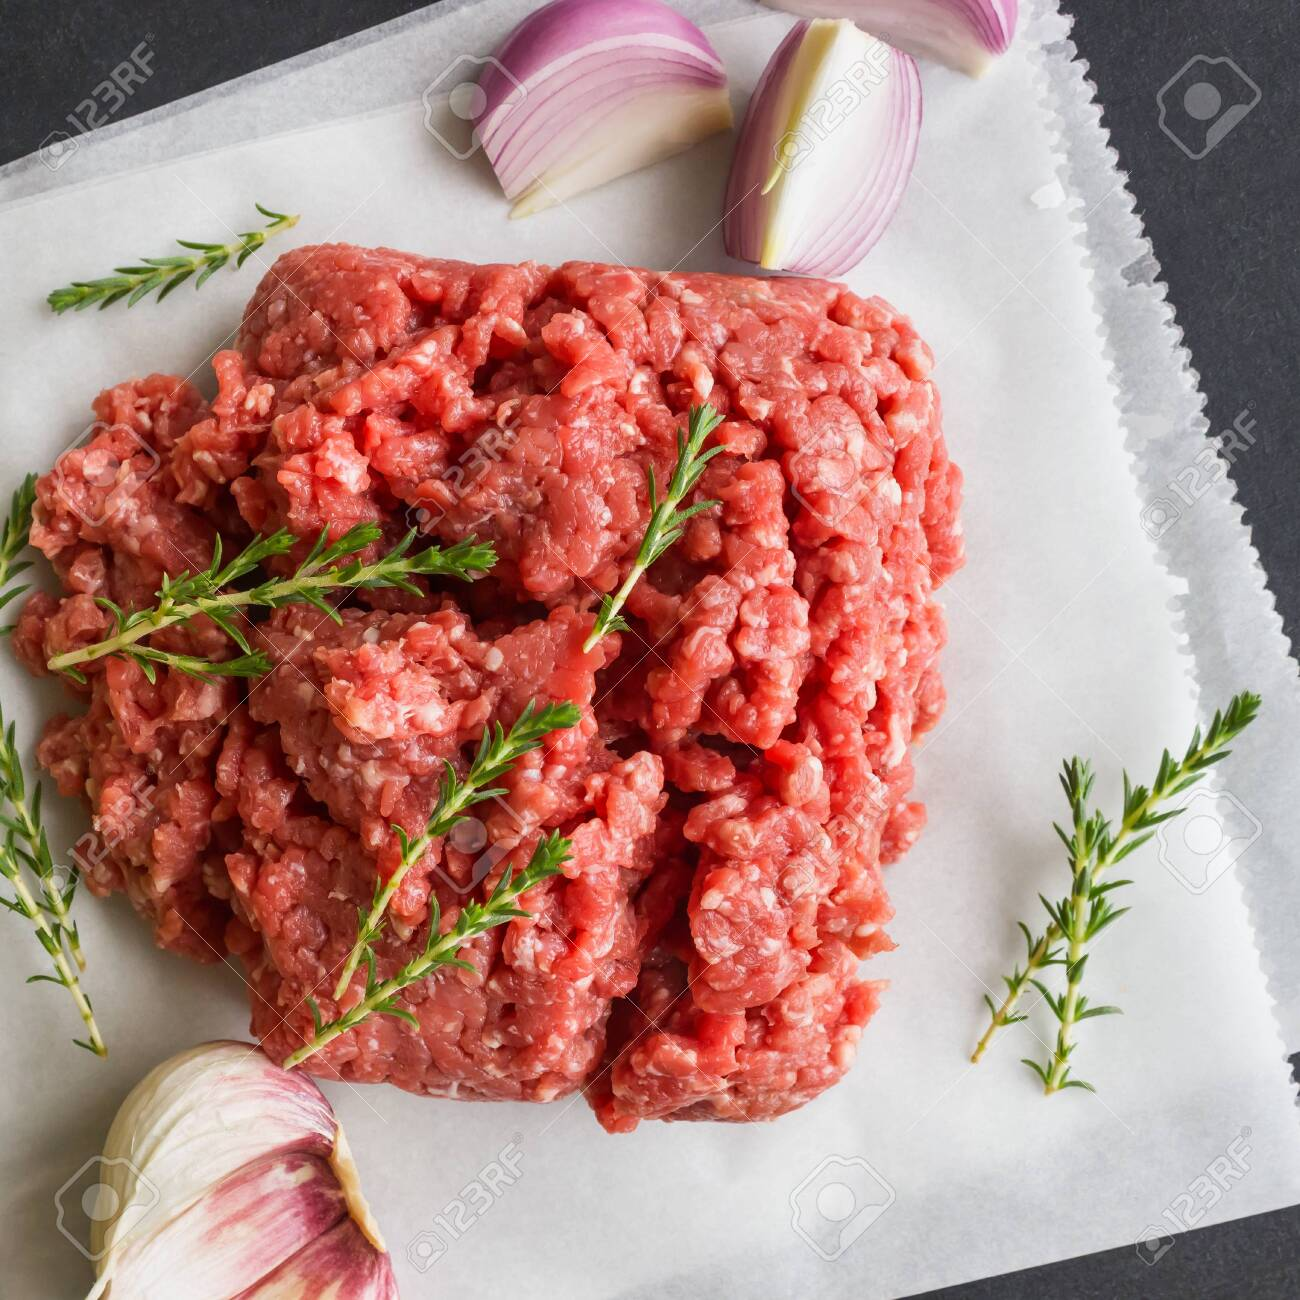 Raw minced meat with thyme and spices for cooking cutlets, hamburgers,